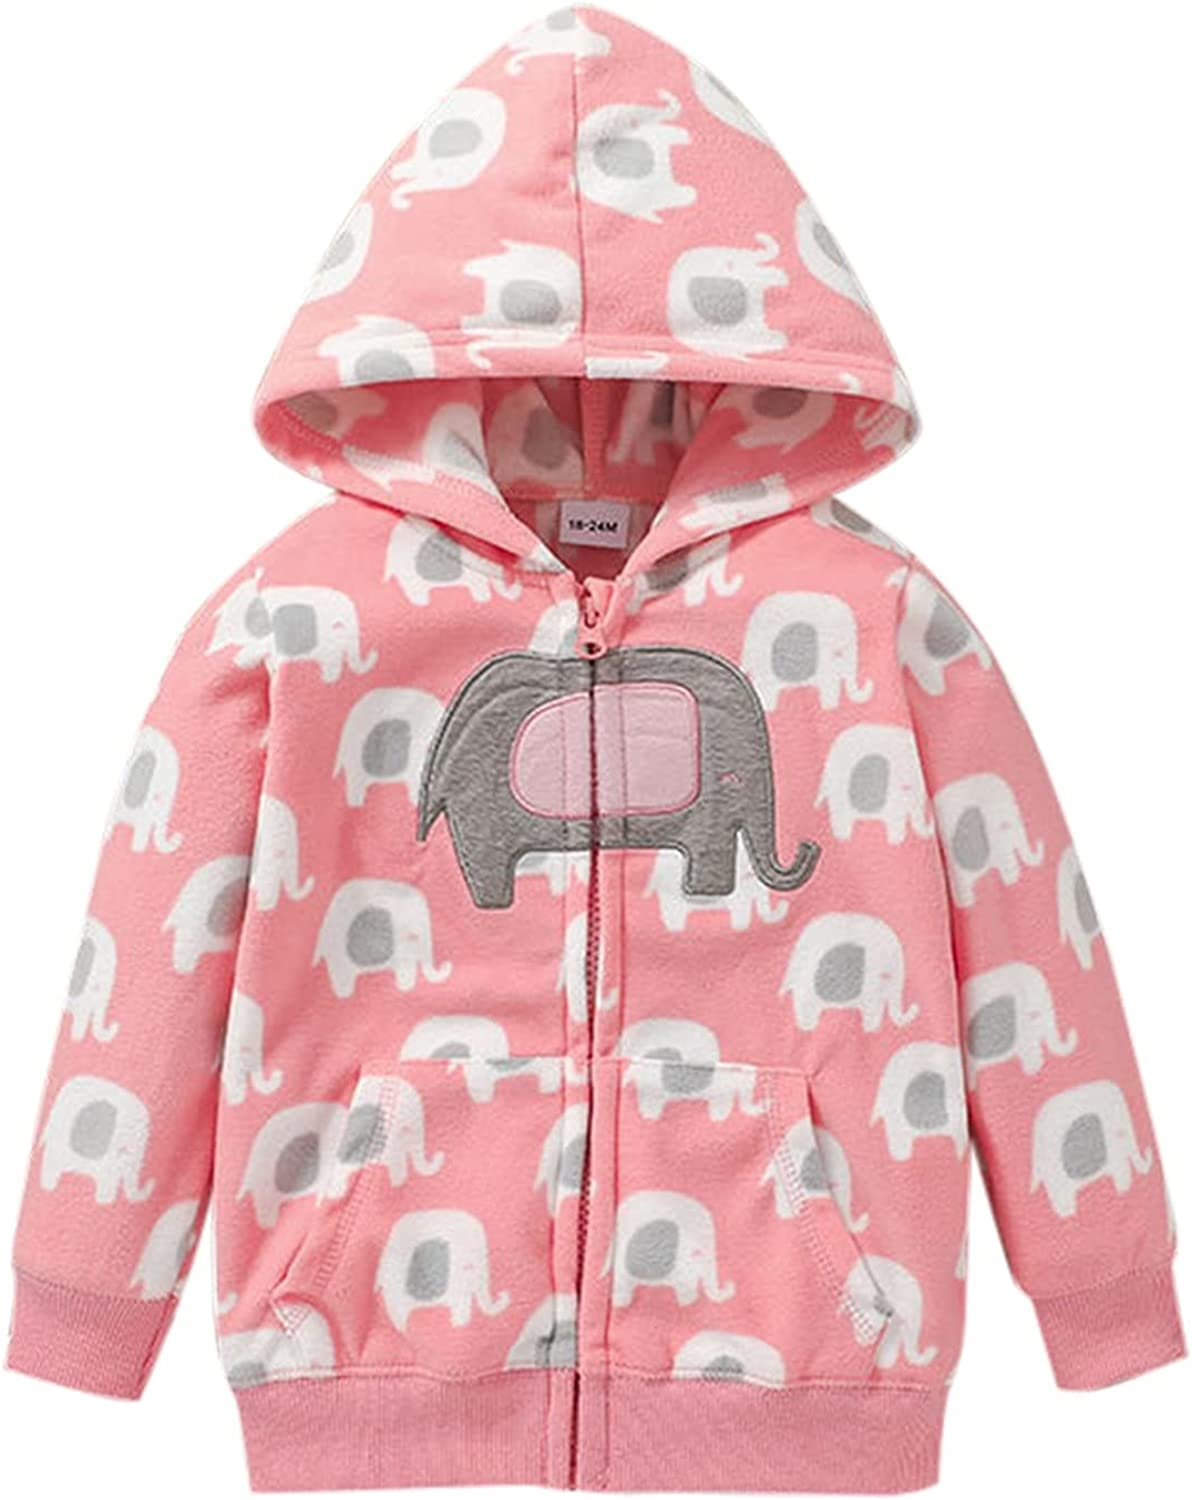 Jchen Girls Max 60% OFF Casual Zip Up Hoodie Sweat Hooded Fashionable Long Sleeve Jacket